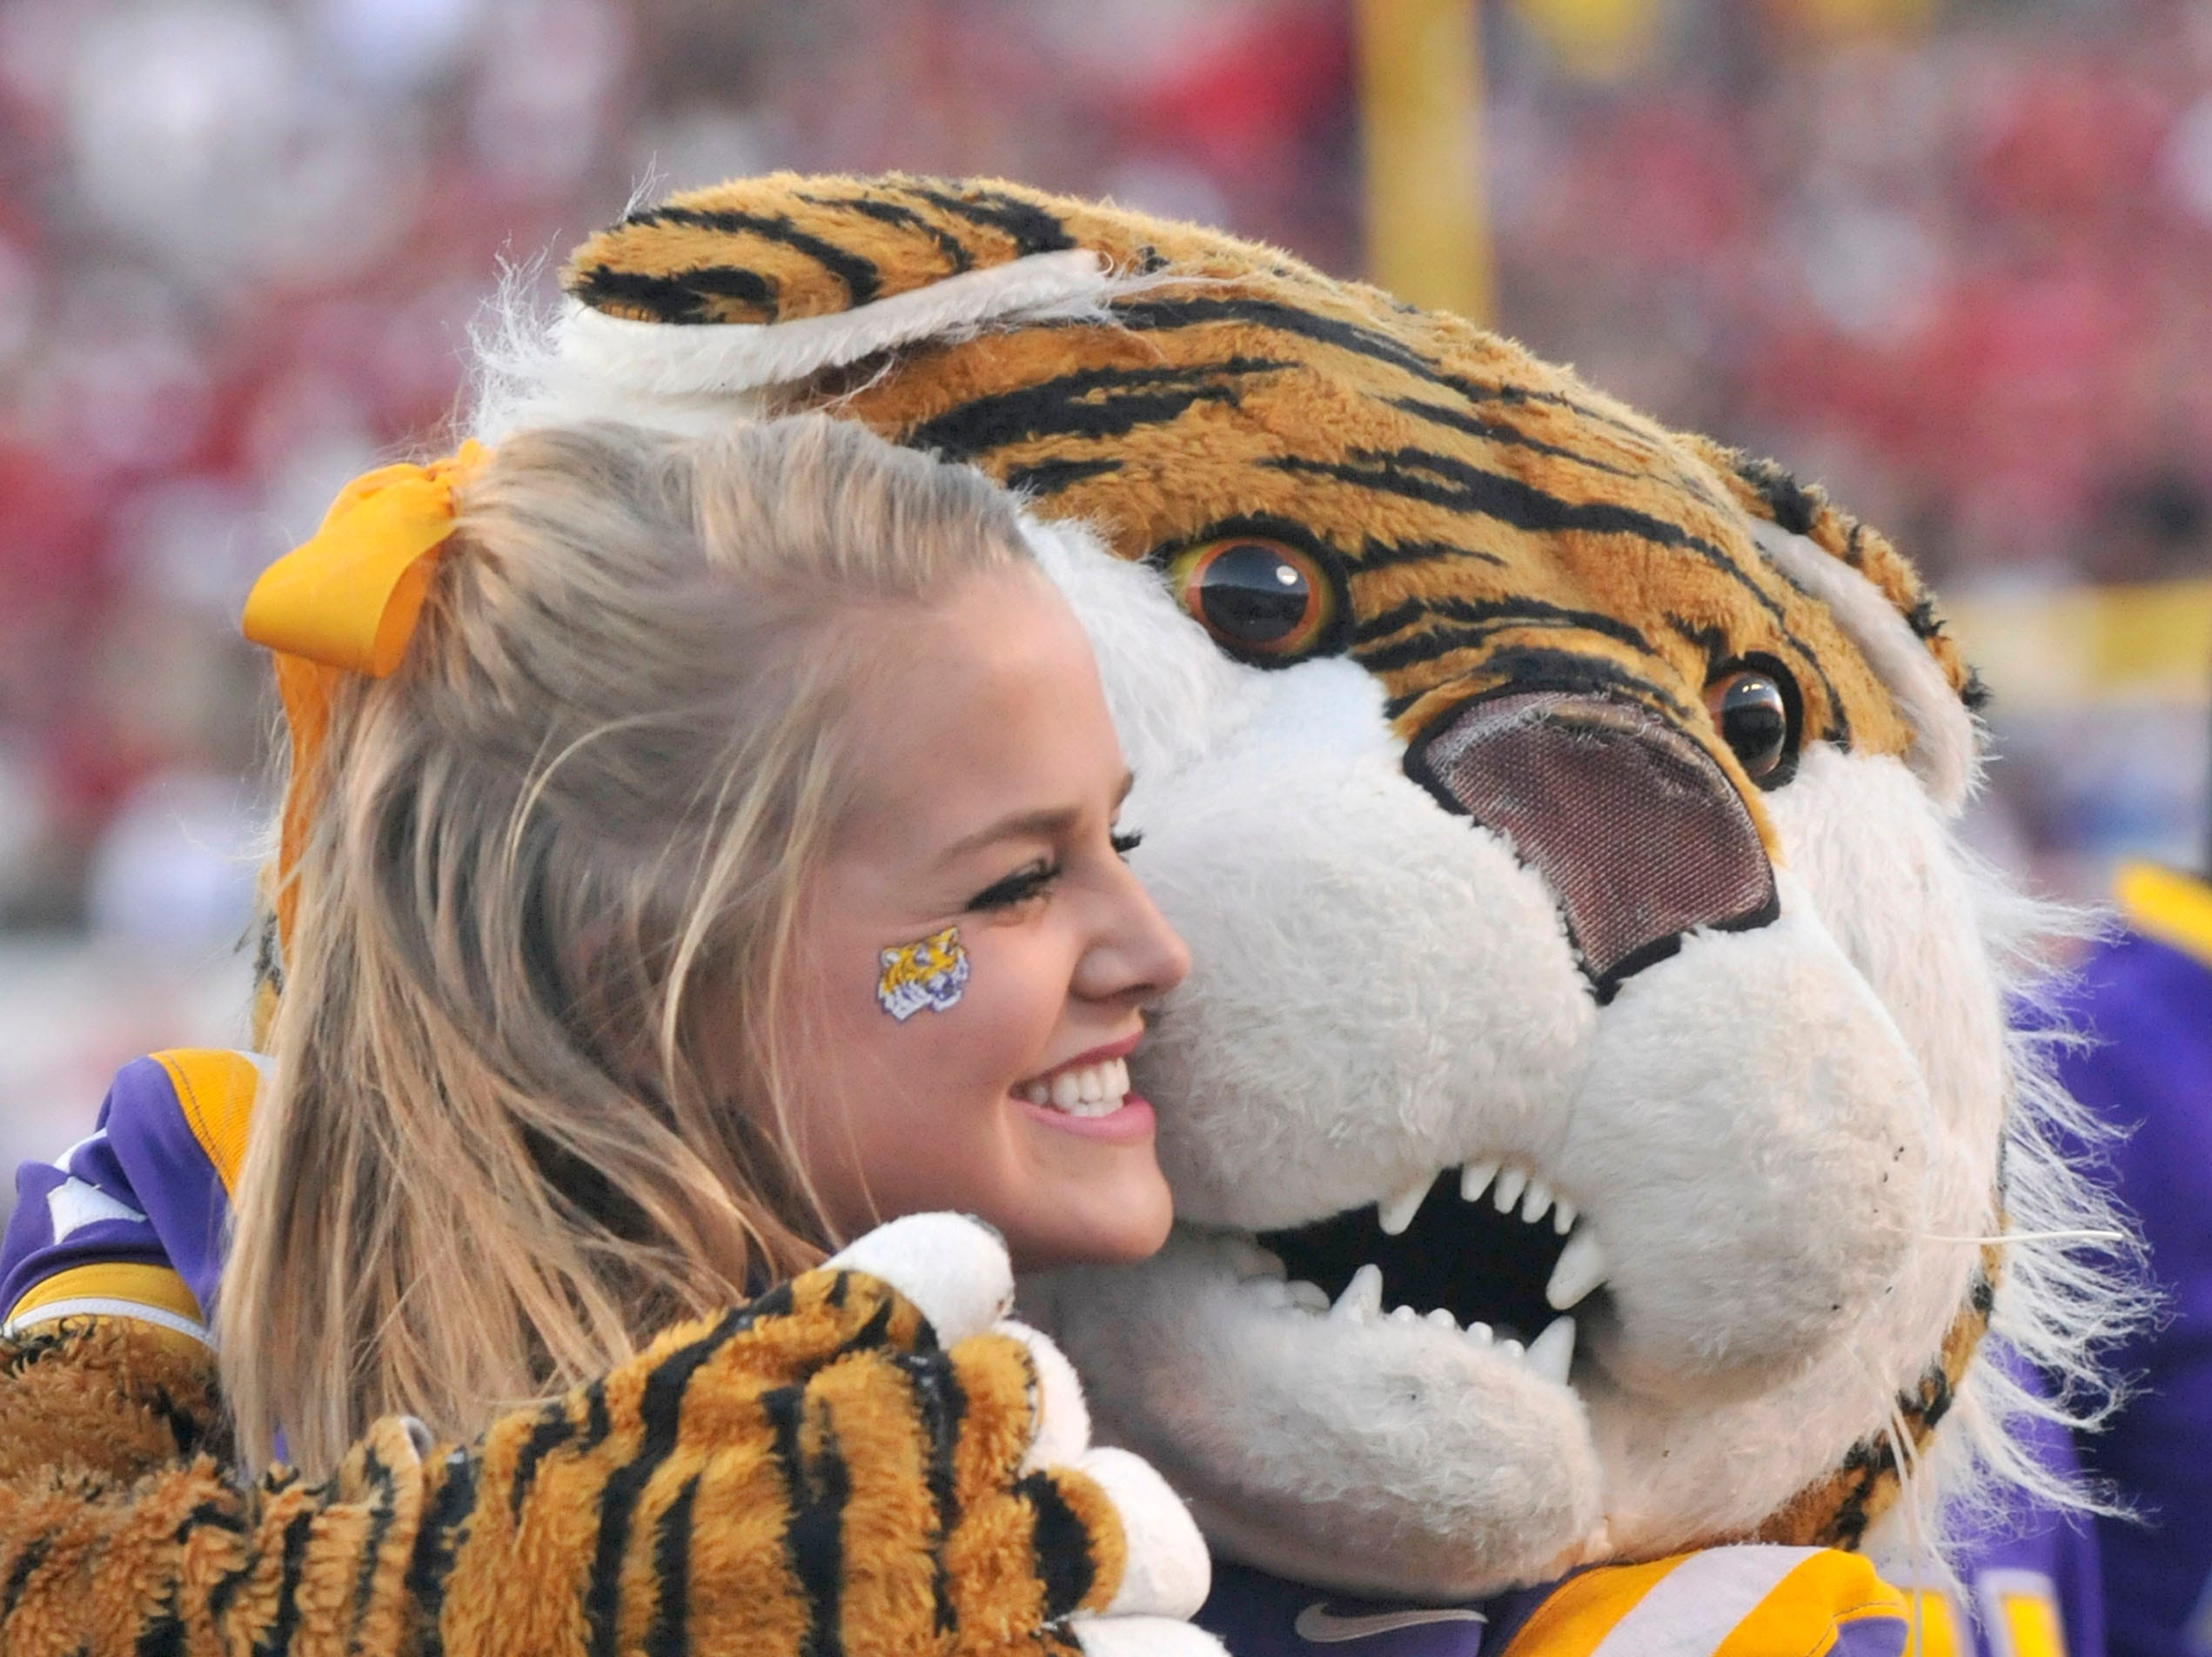 A person dressed in the LSU tiger mascot costume hugs a cheerleader during an NCAA college football game against Arkansas in Little Rock, Ark., Saturday, Nov. 27, 2010. (AP Photo/April L Brown)